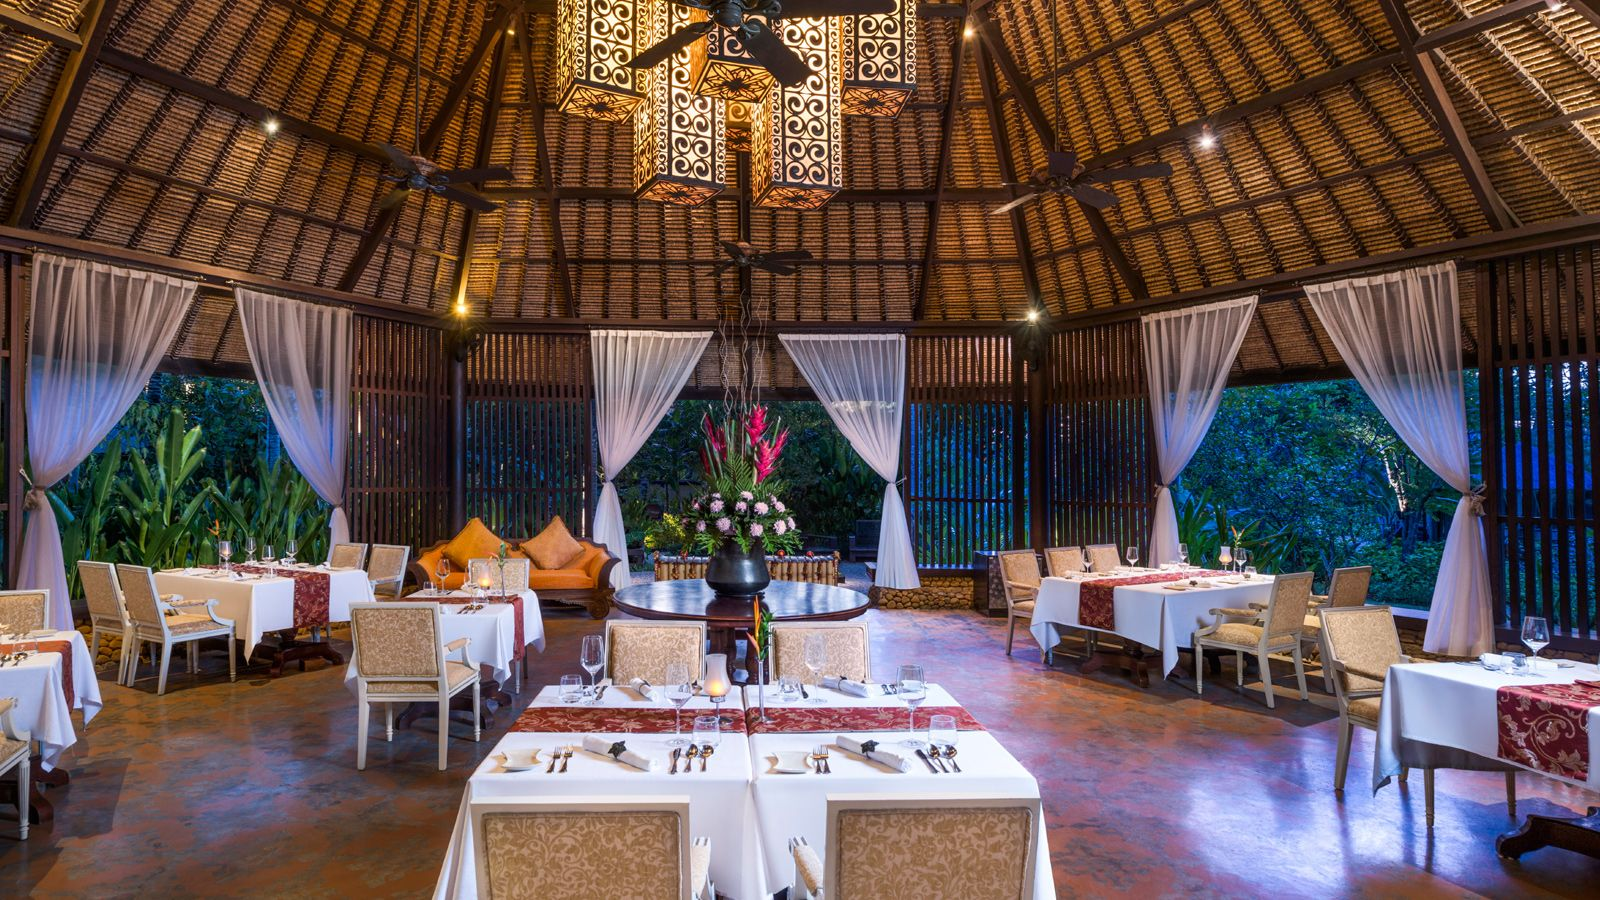 Dulang Restaurant at The St Regis Bali Resort